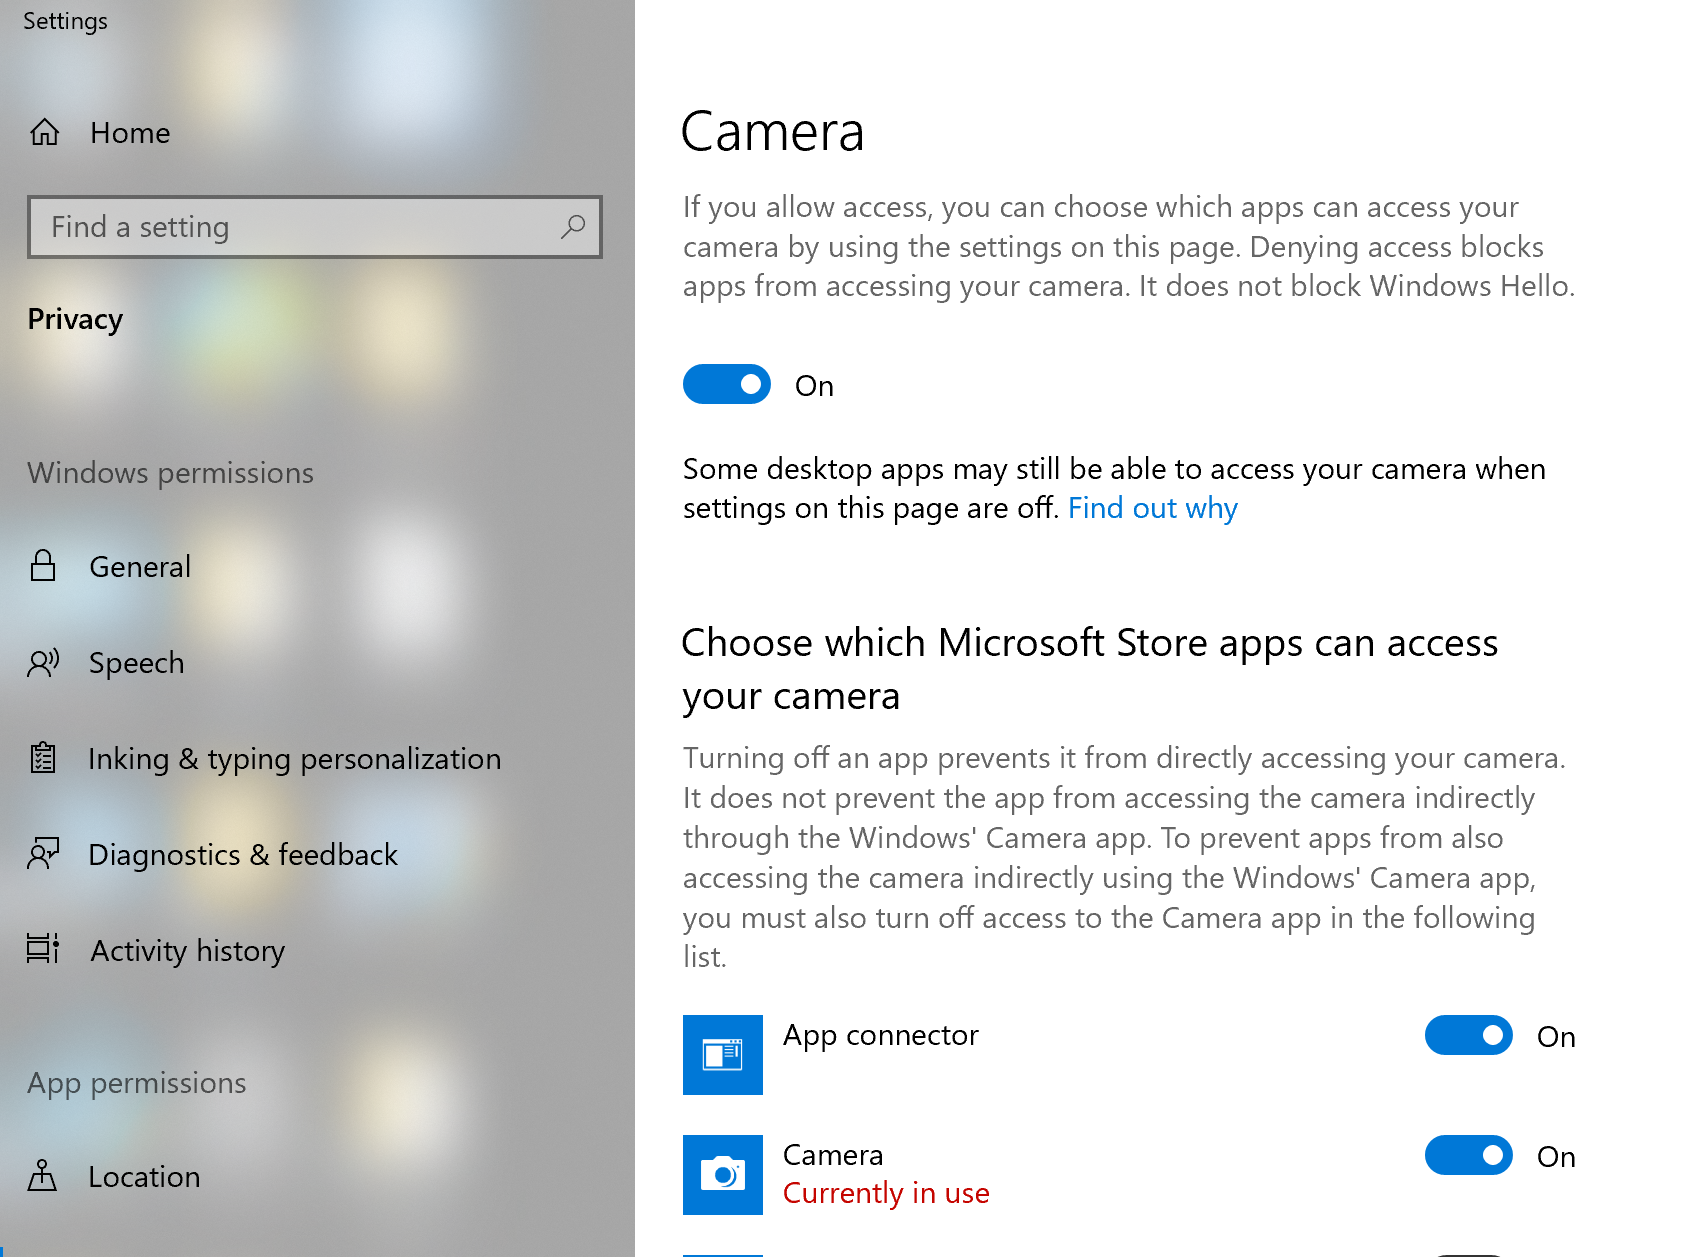 MS Store apps list